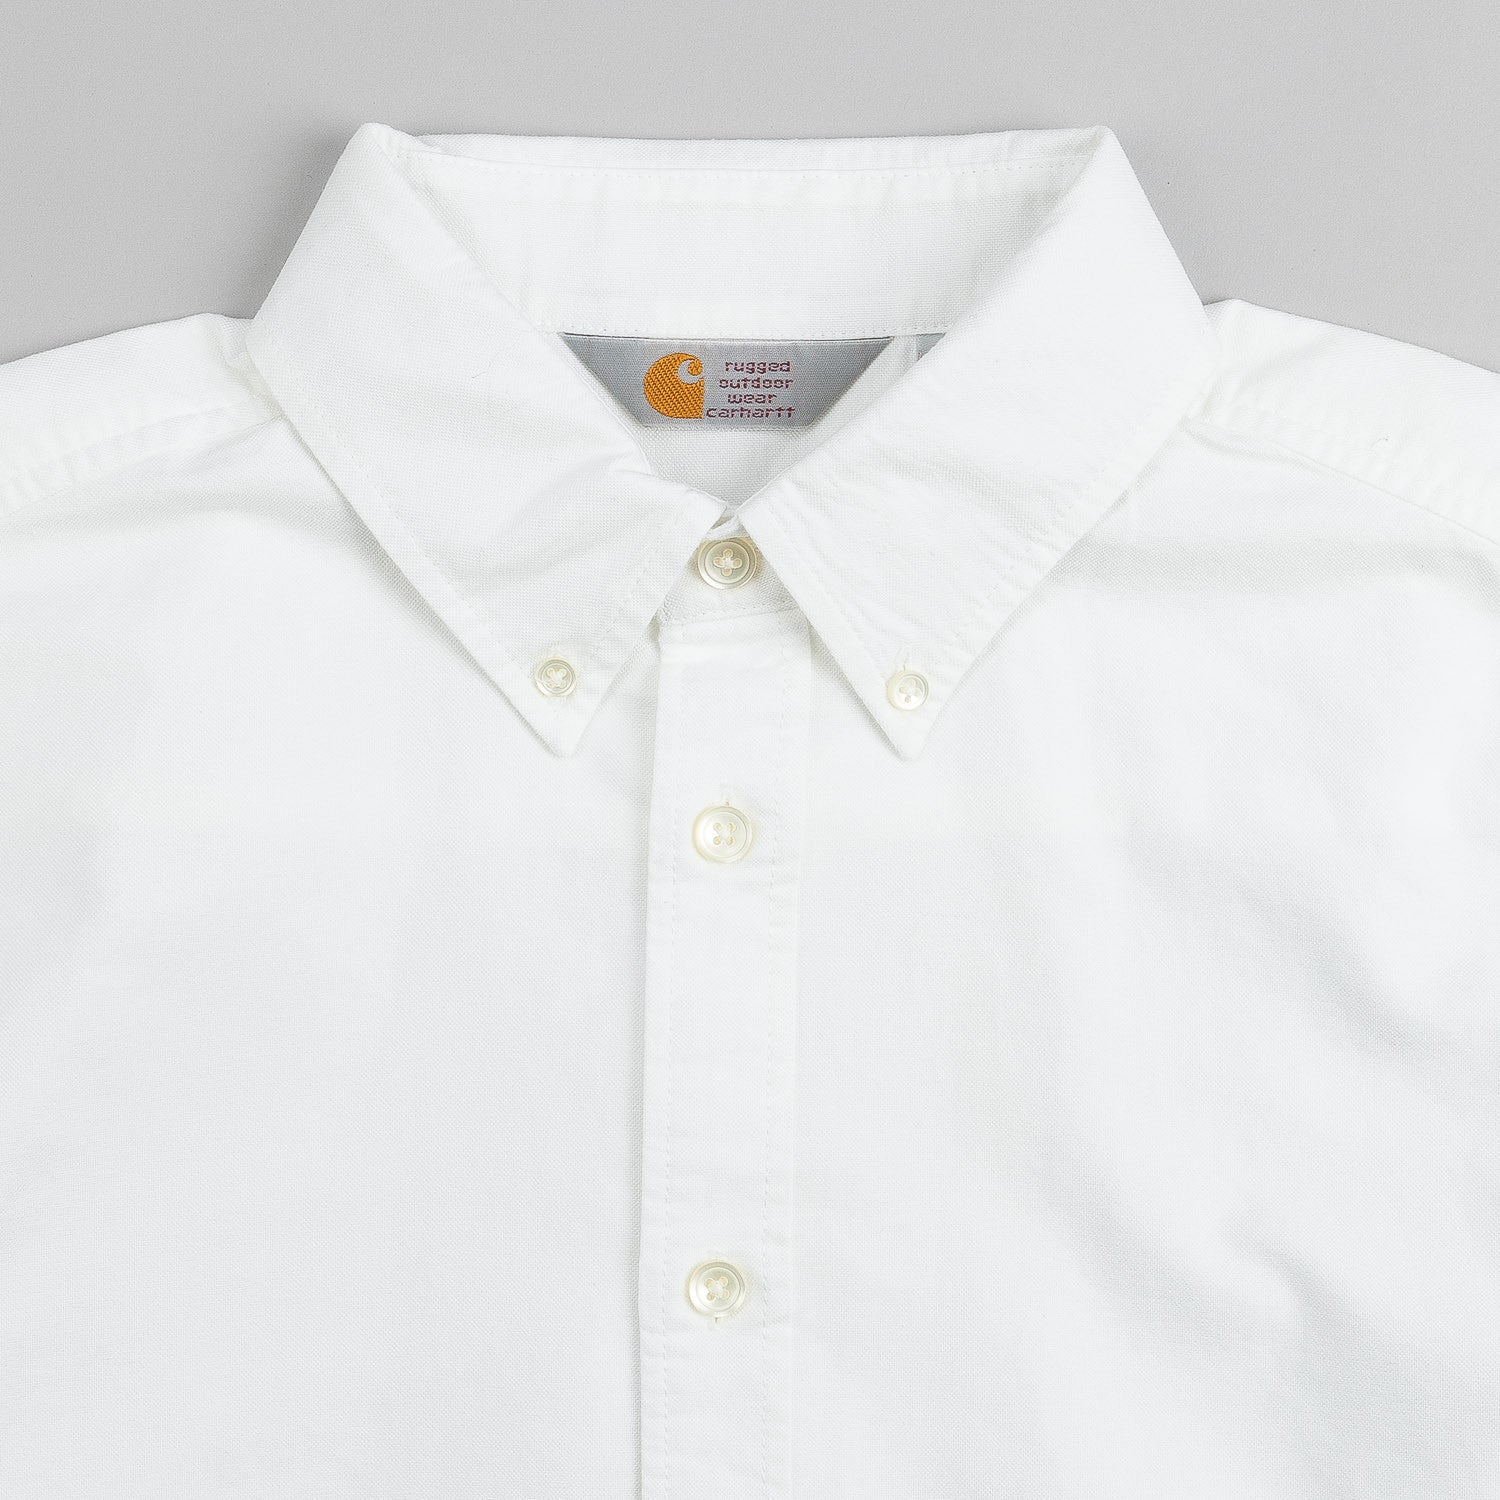 Carhartt Button Down Long Sleeve Shirt White Stone Washed